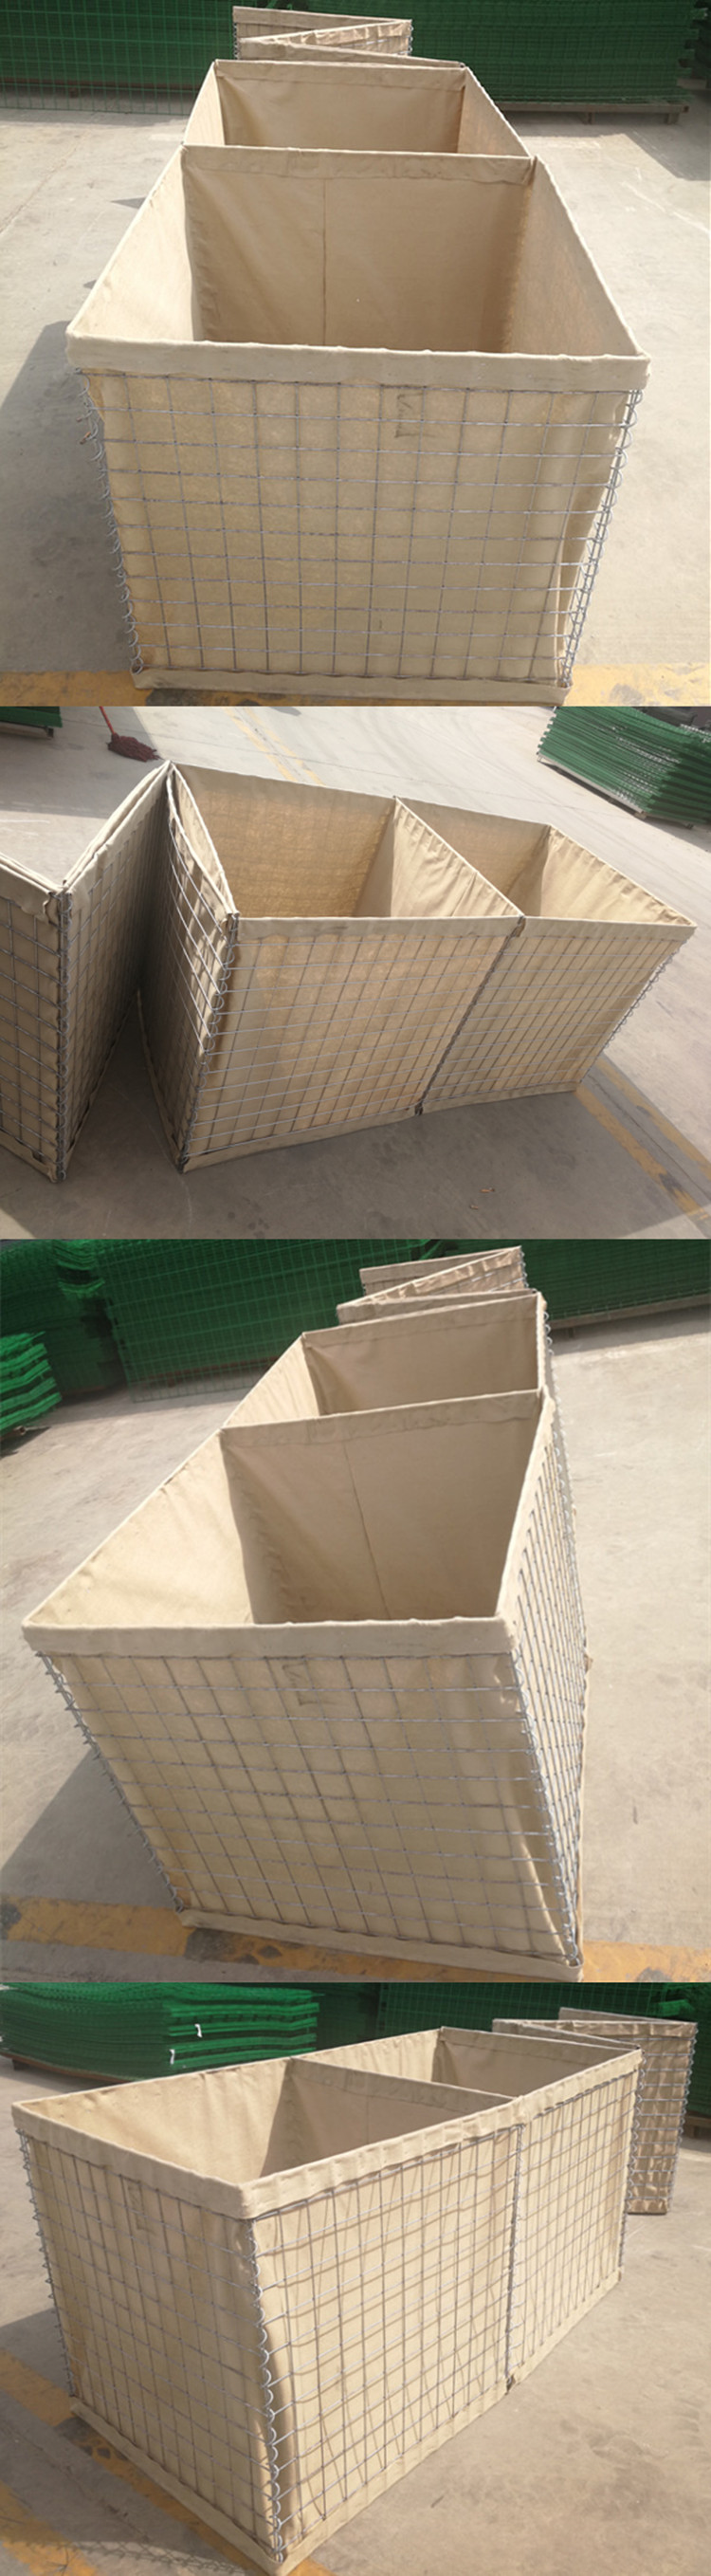 hesco defensive barriers